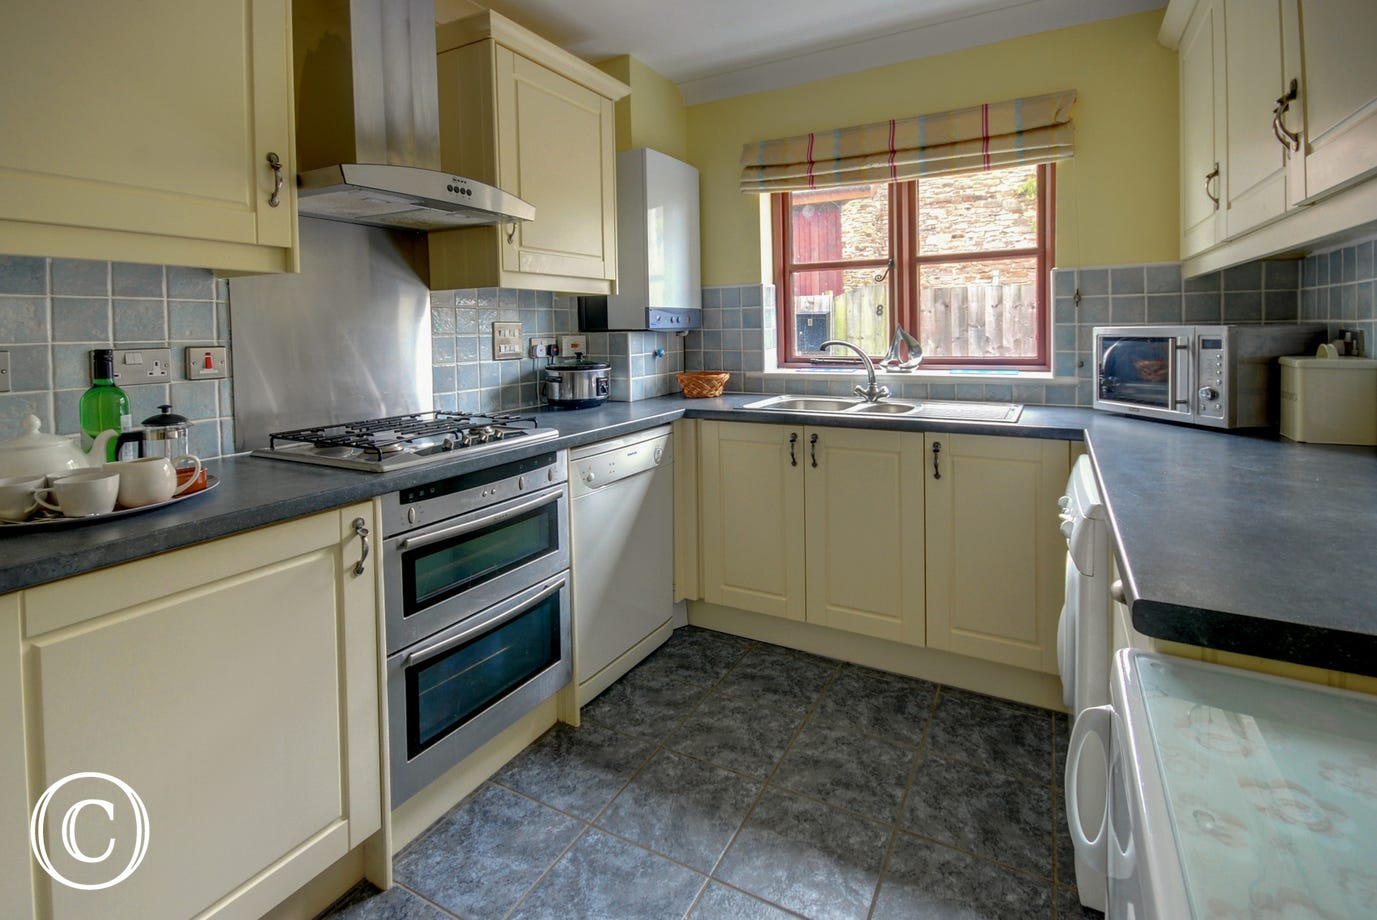 The kitchen has plenty of space to prepare meals and is well equipped